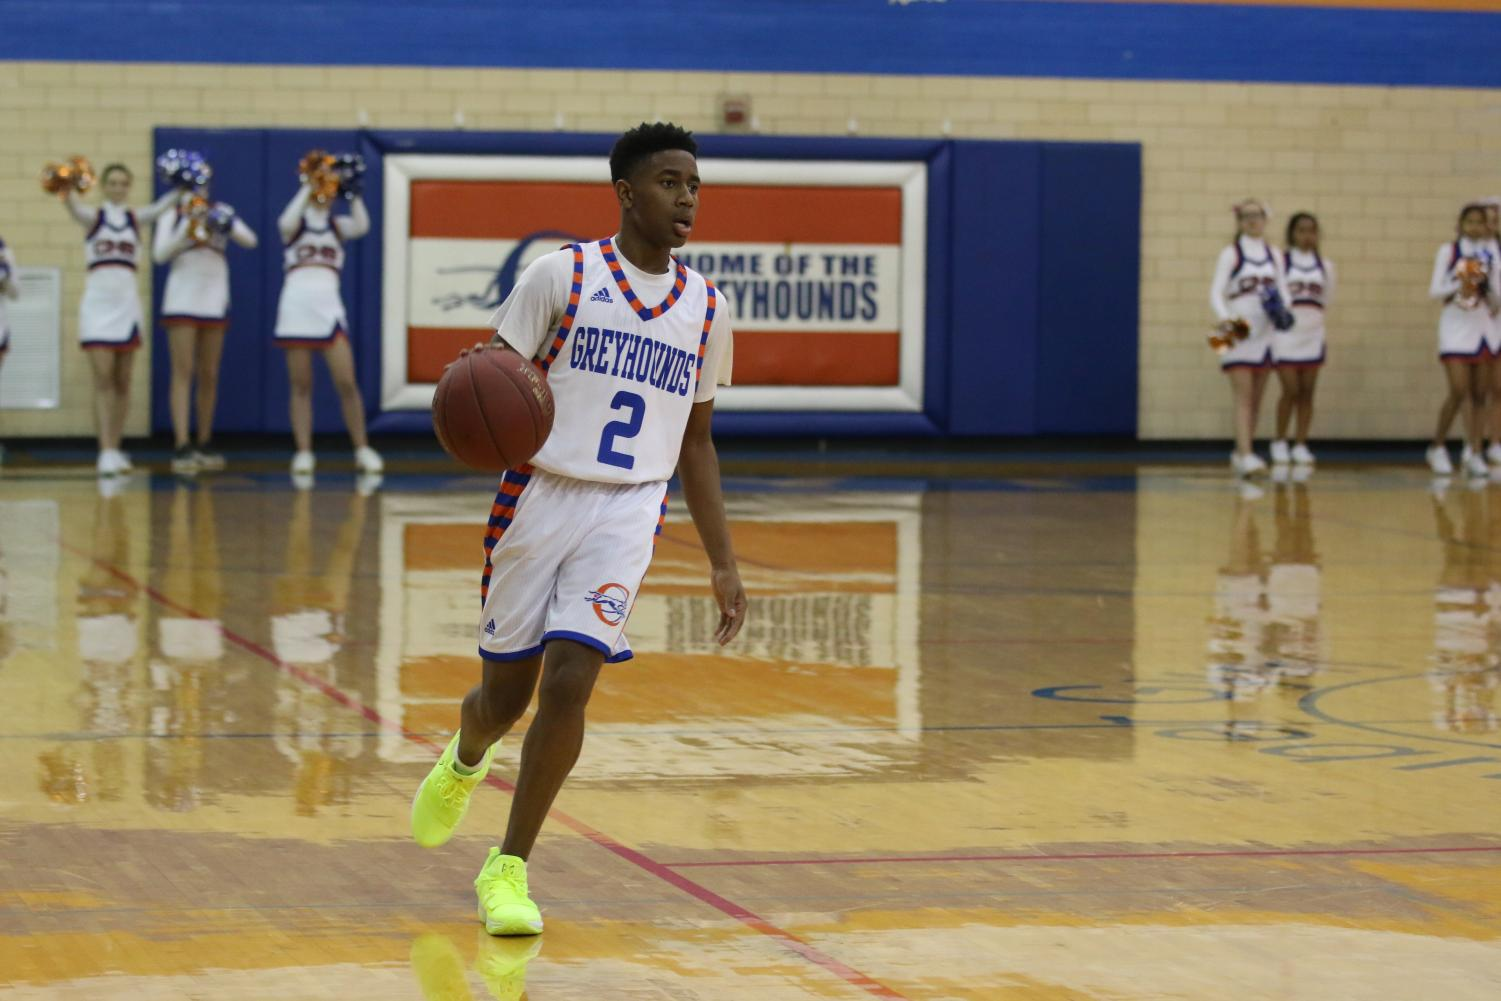 Senior Robert Hancock moves up the court with the ball during the 2017-18 season's Coaches vs. Cancer game against Ladue.